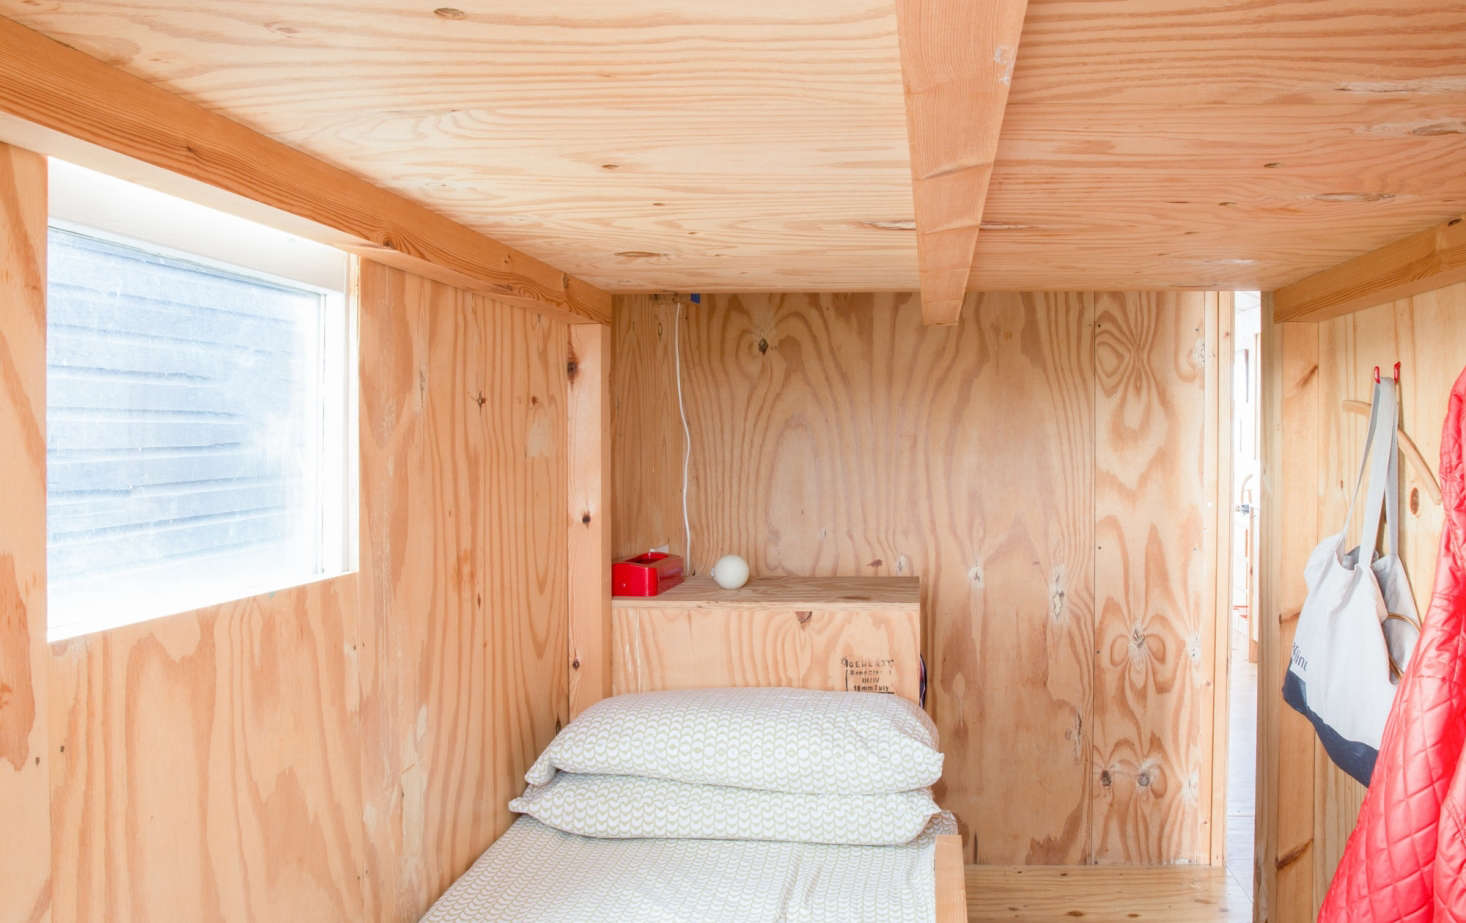 The bedroom has a twin bed and a sleeping loft big enough for two. In addition to wall hooks, there are storage bins incorporated into the steps to the loft.